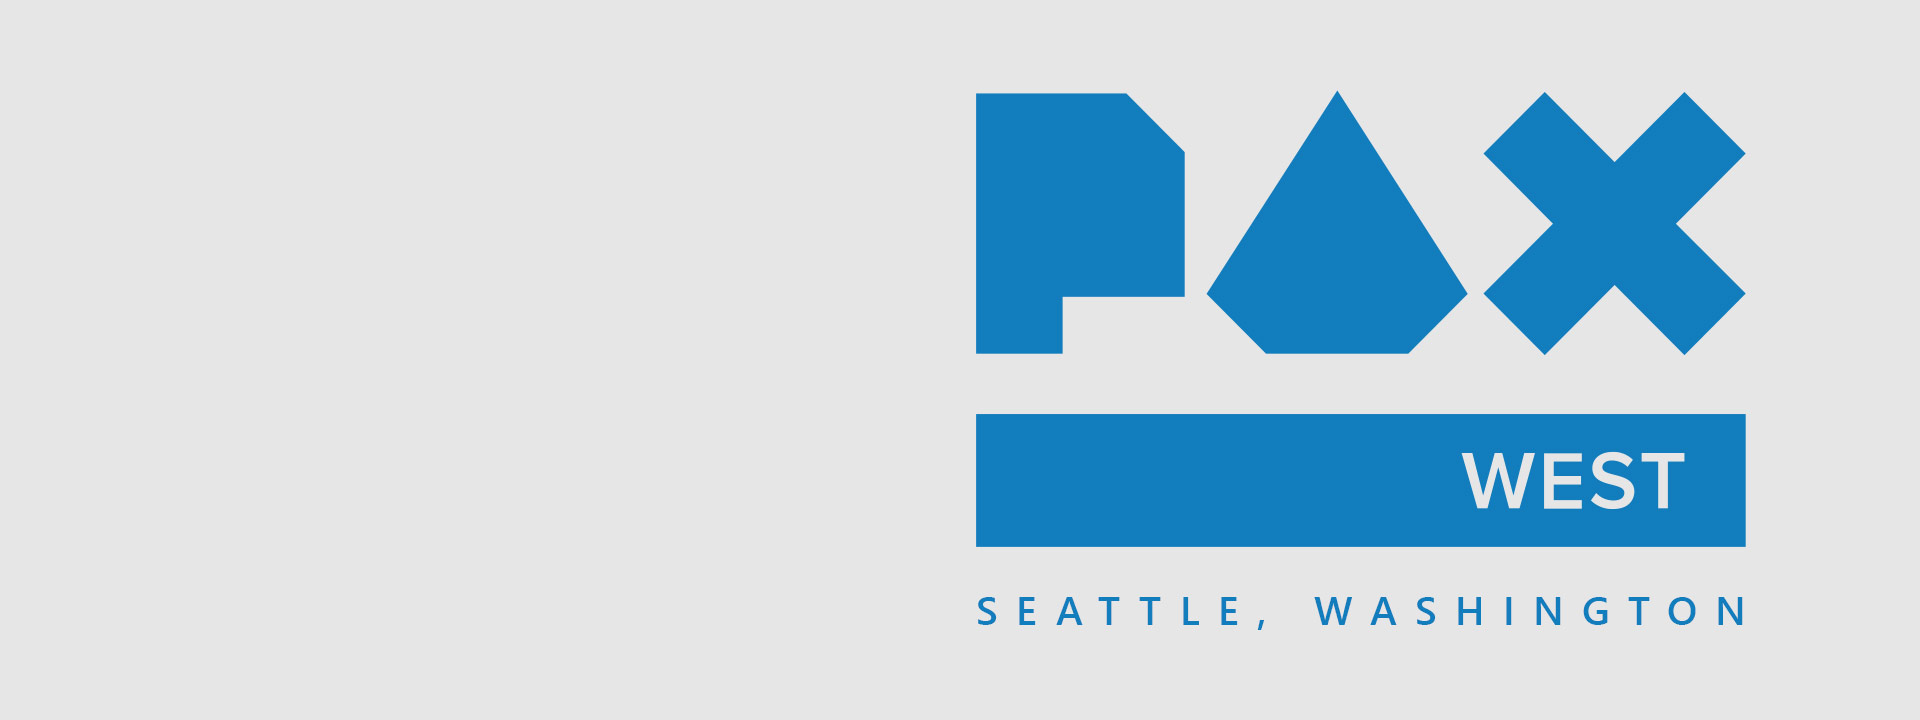 Seattle Washington, PAX west logo